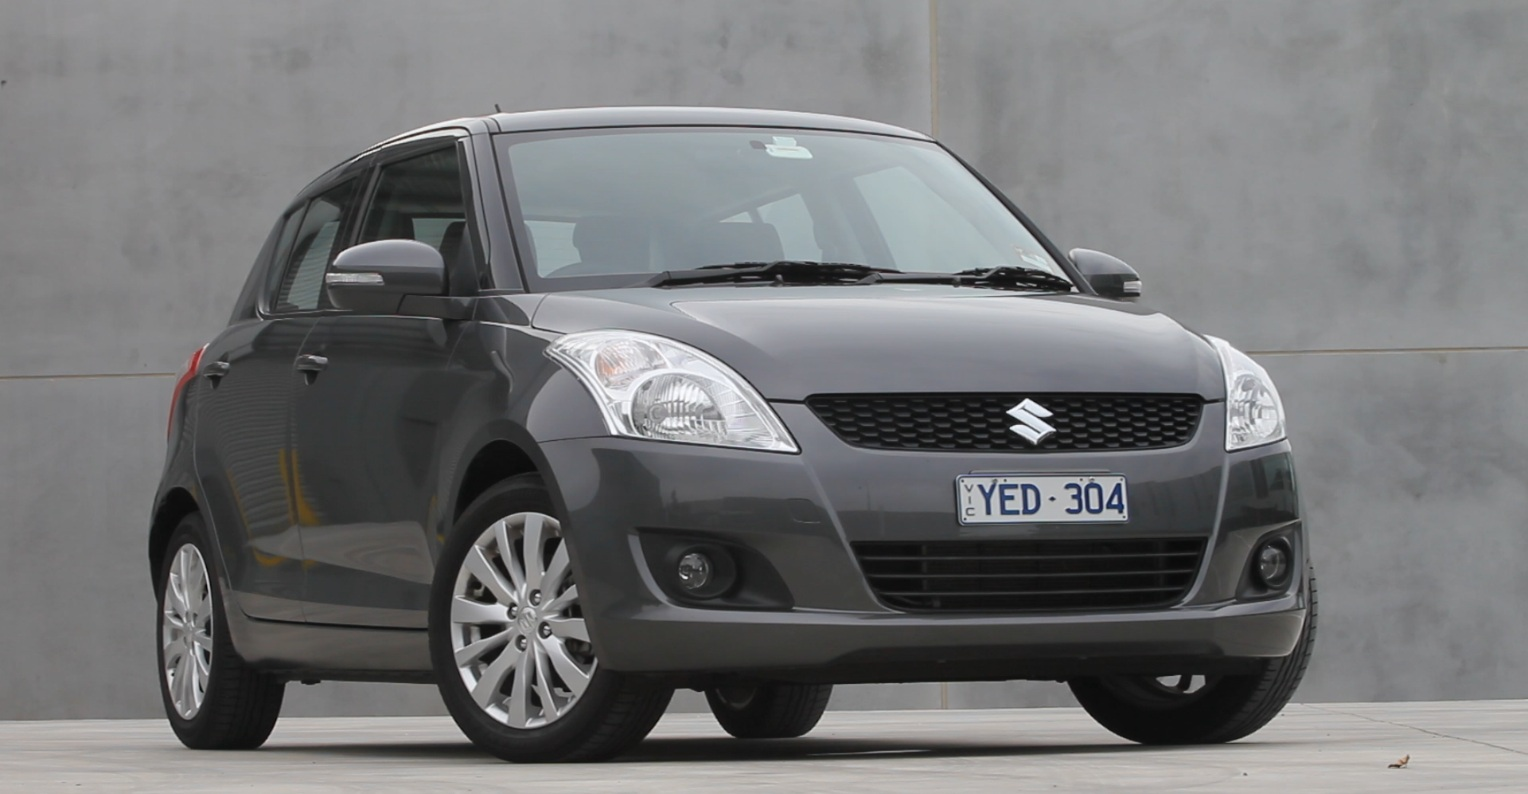 suzuki swift glx picture 8 reviews news specs buy car. Black Bedroom Furniture Sets. Home Design Ideas